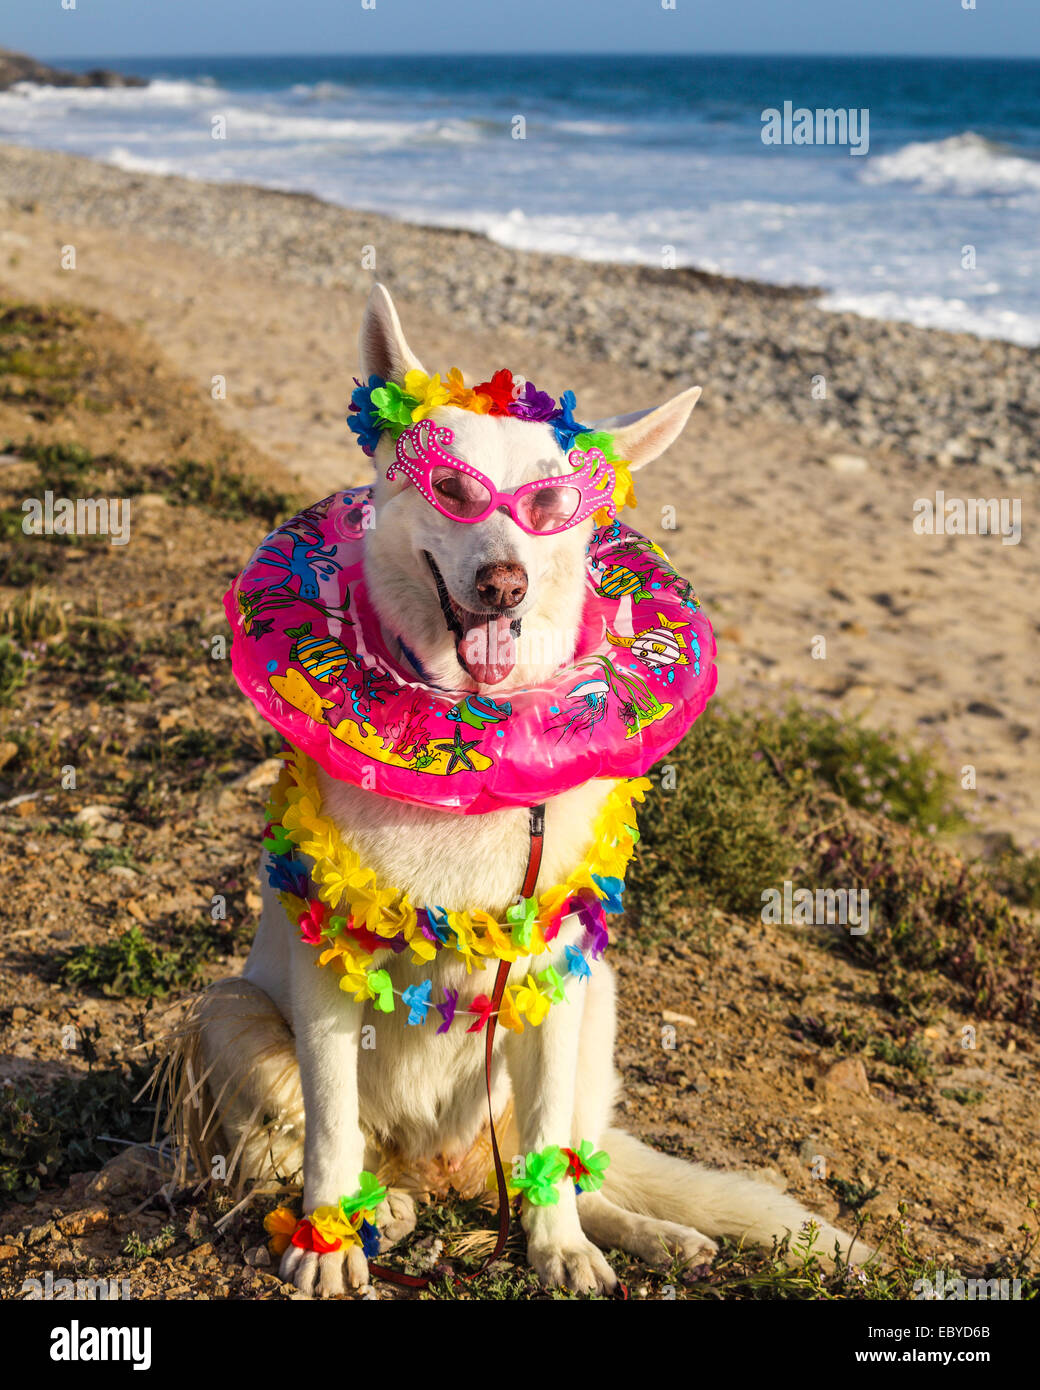 Dog in Halloween costume at the beach - Stock Image